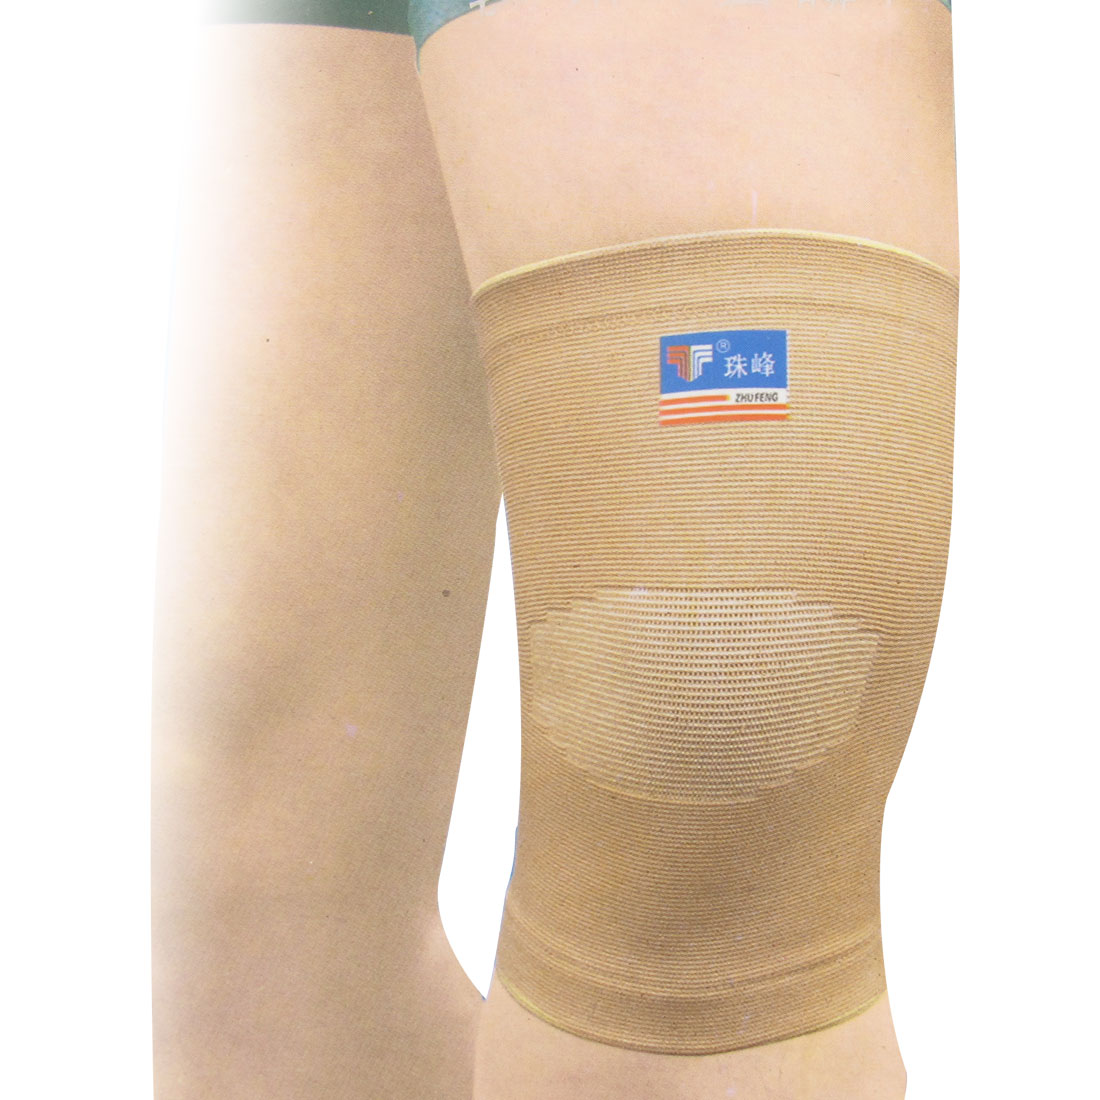 Portable Sport Stretchy Beige Knee Support Protective Gear